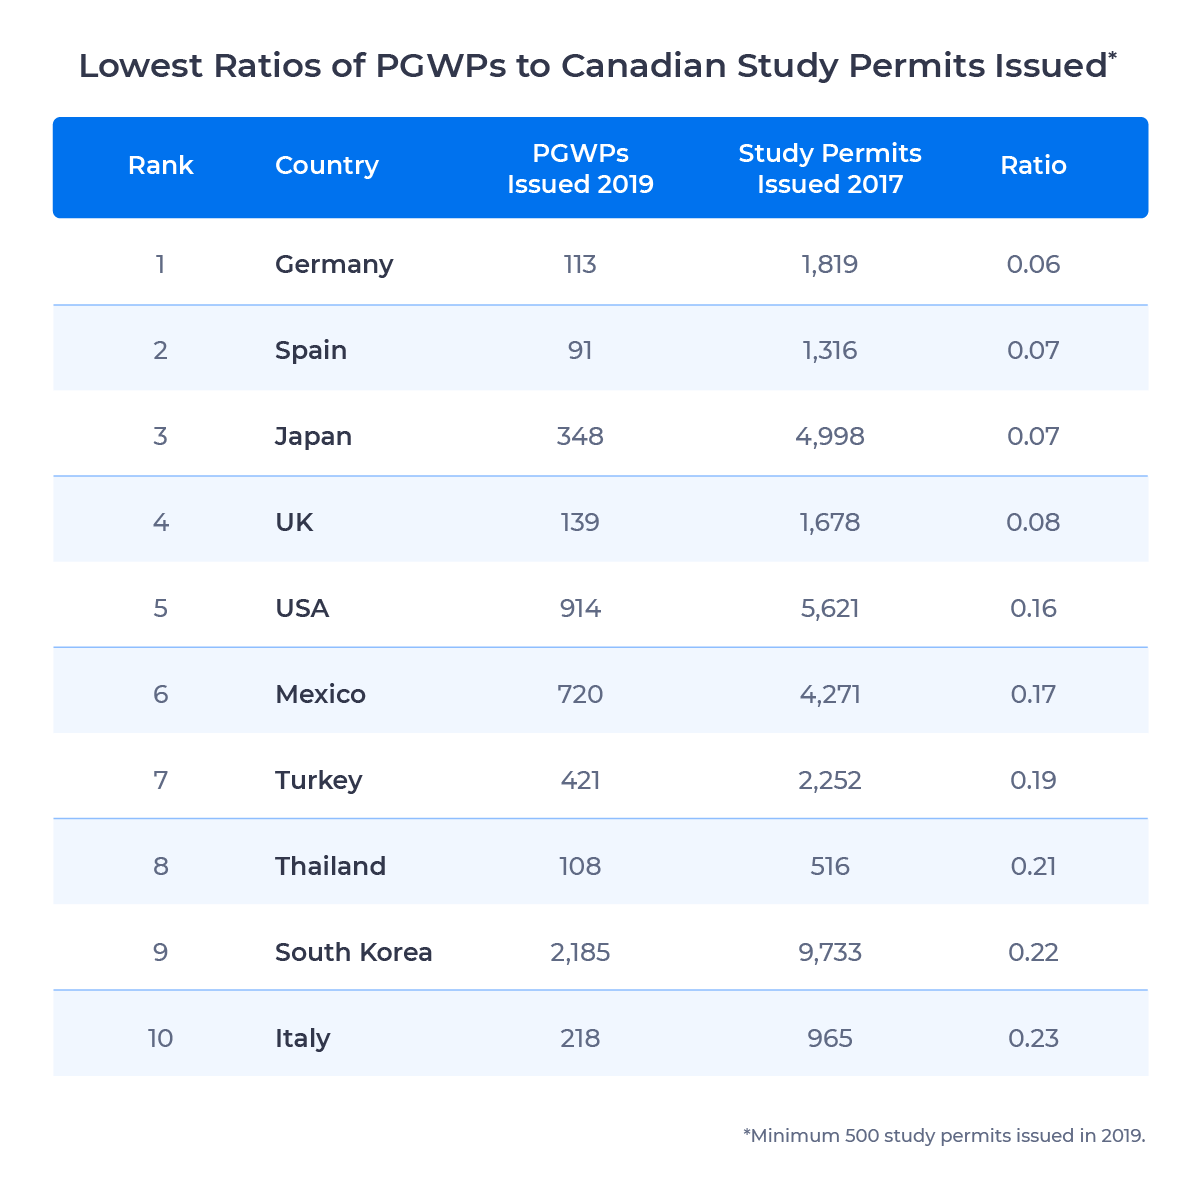 Table showing the 10 source countries with the lowest ratios of PGWPs (2019) to Canadian study permits (2017) issued. Examined in detail below.